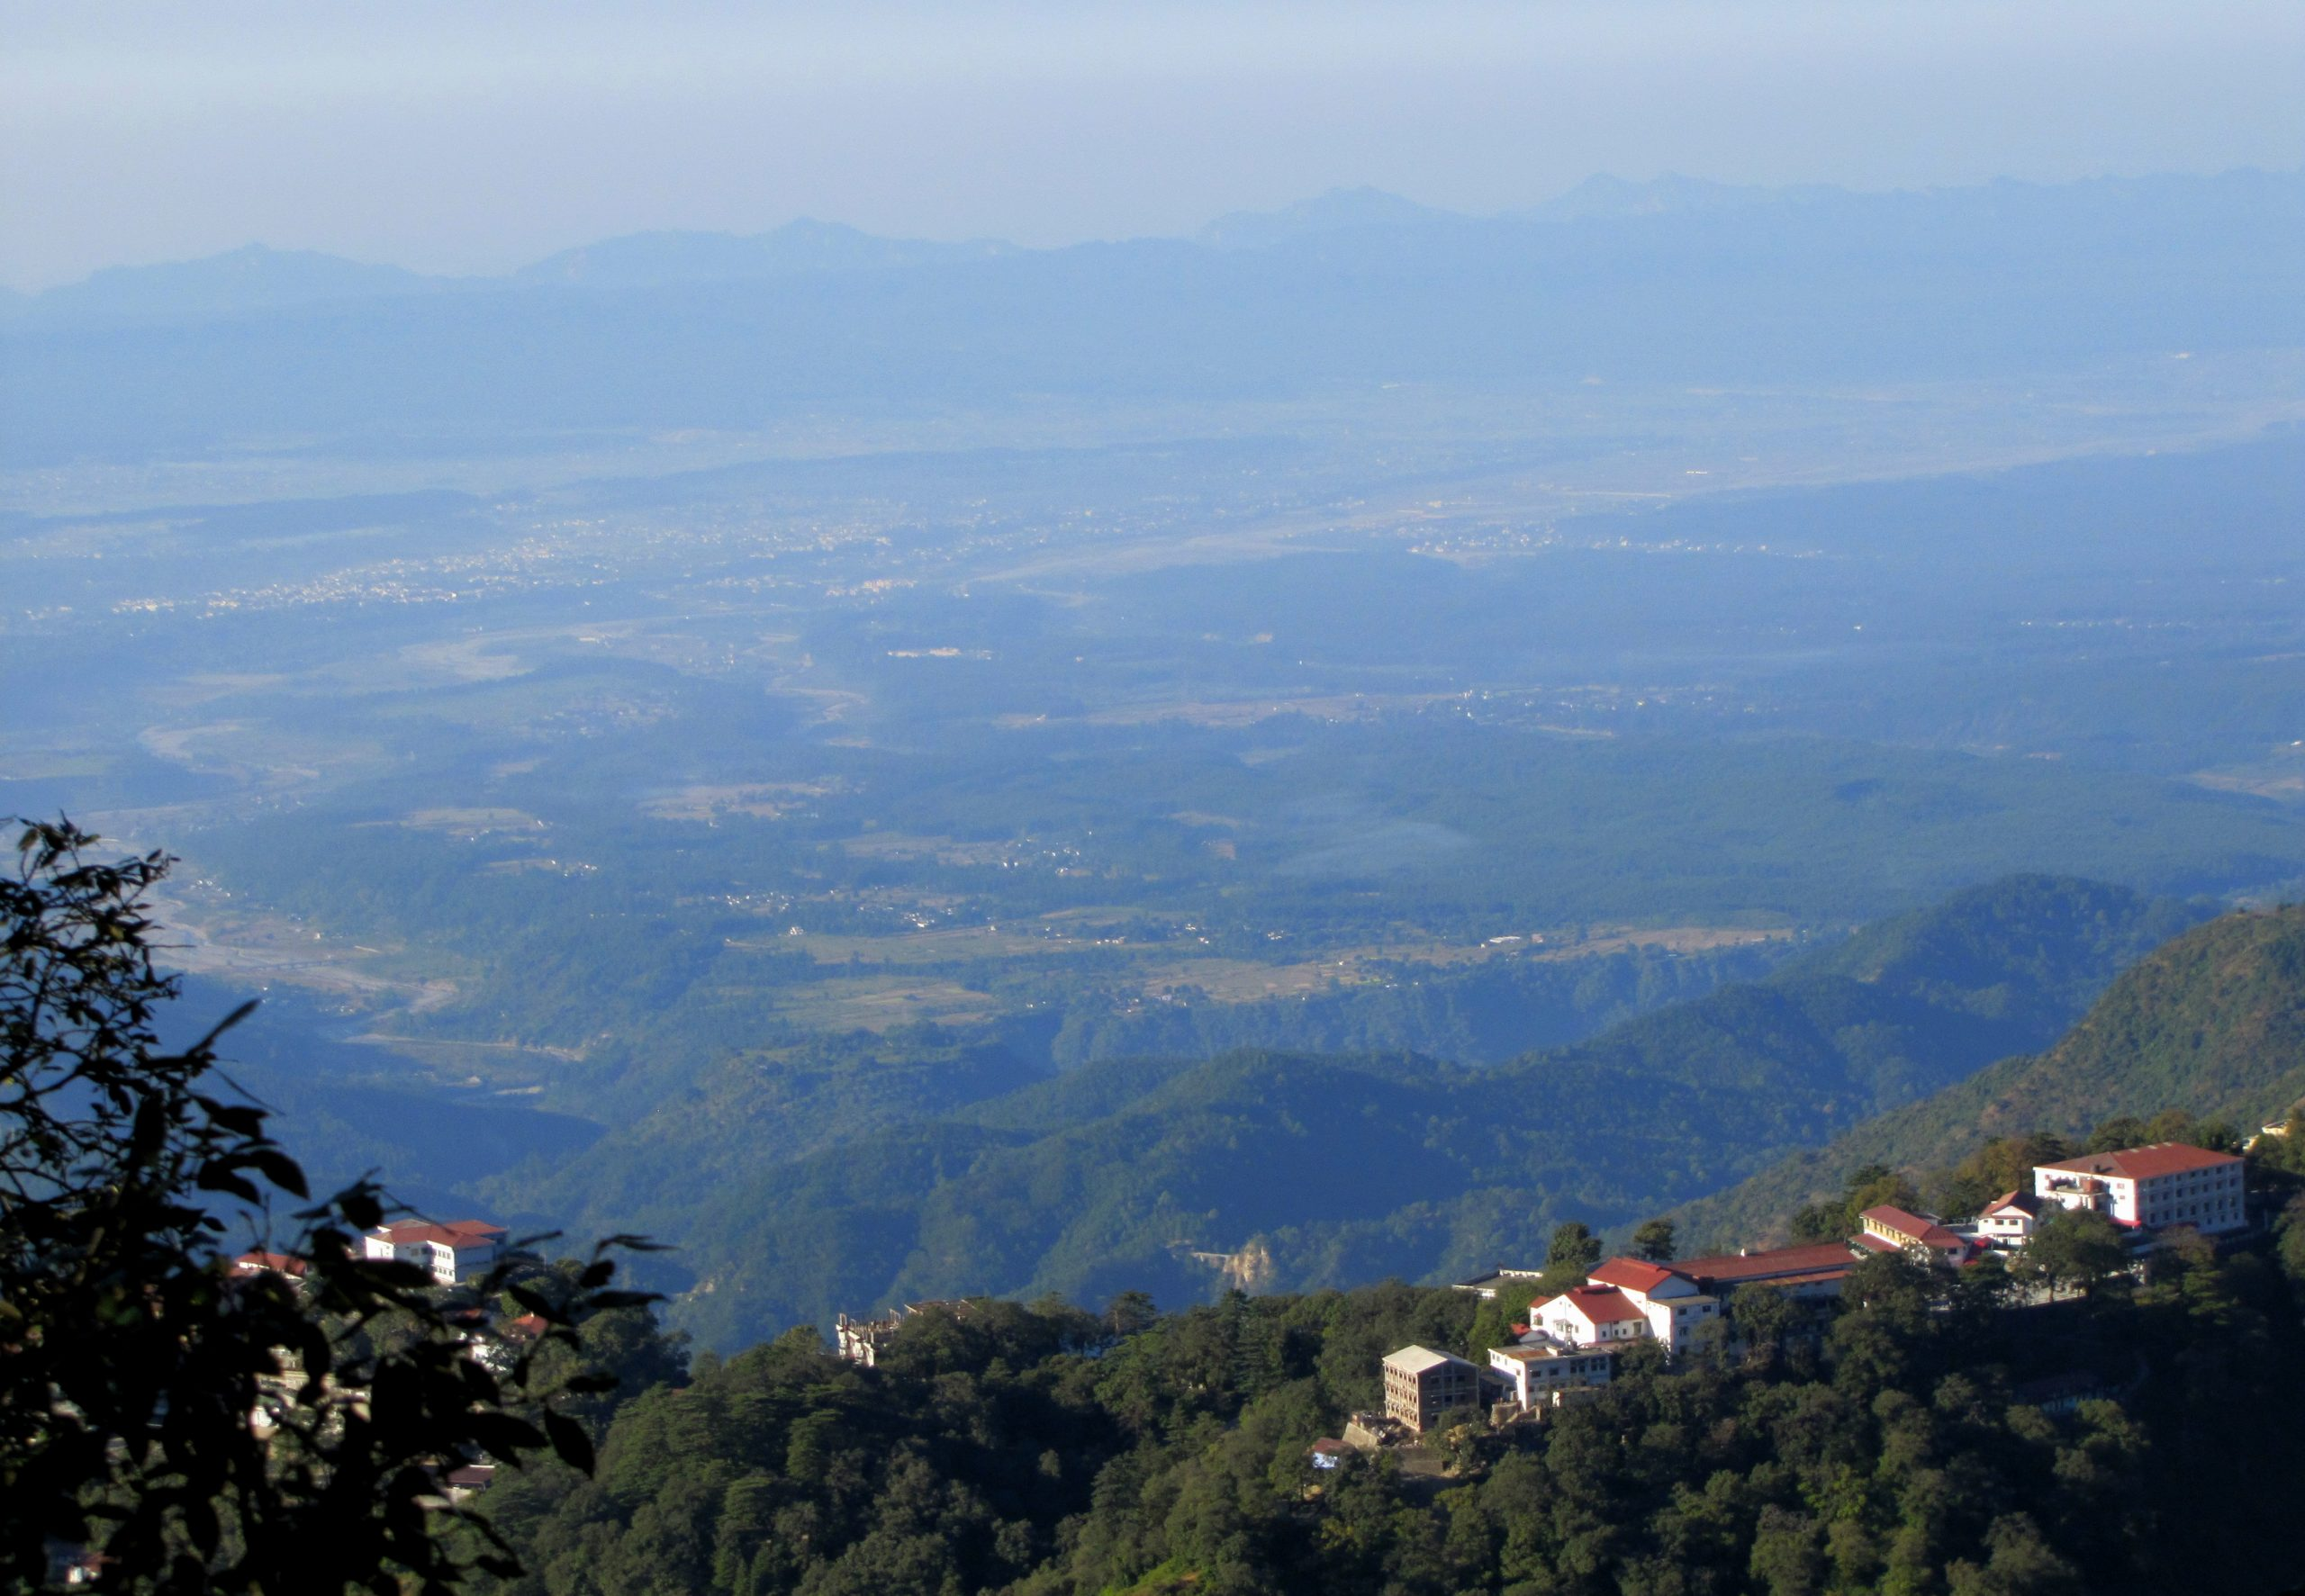 Landour Most Popular Place To Visit In Uttarakhand